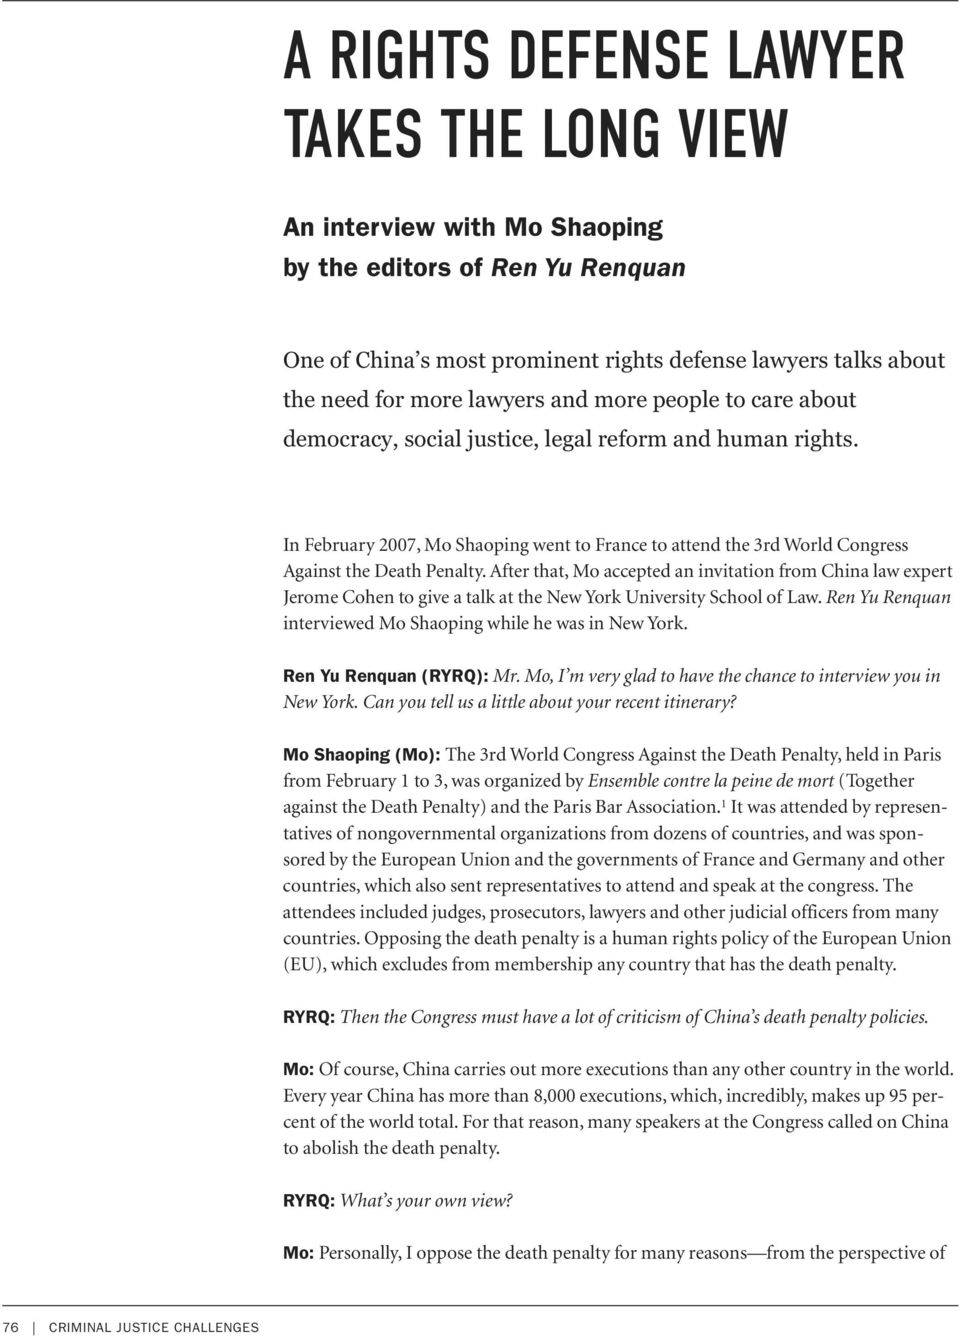 After that, Mo accepted an invitation from China law expert Jerome Cohen to give a talk at the New York University School of Law. Ren Yu Renquan interviewed Mo Shaoping while he was in New York.